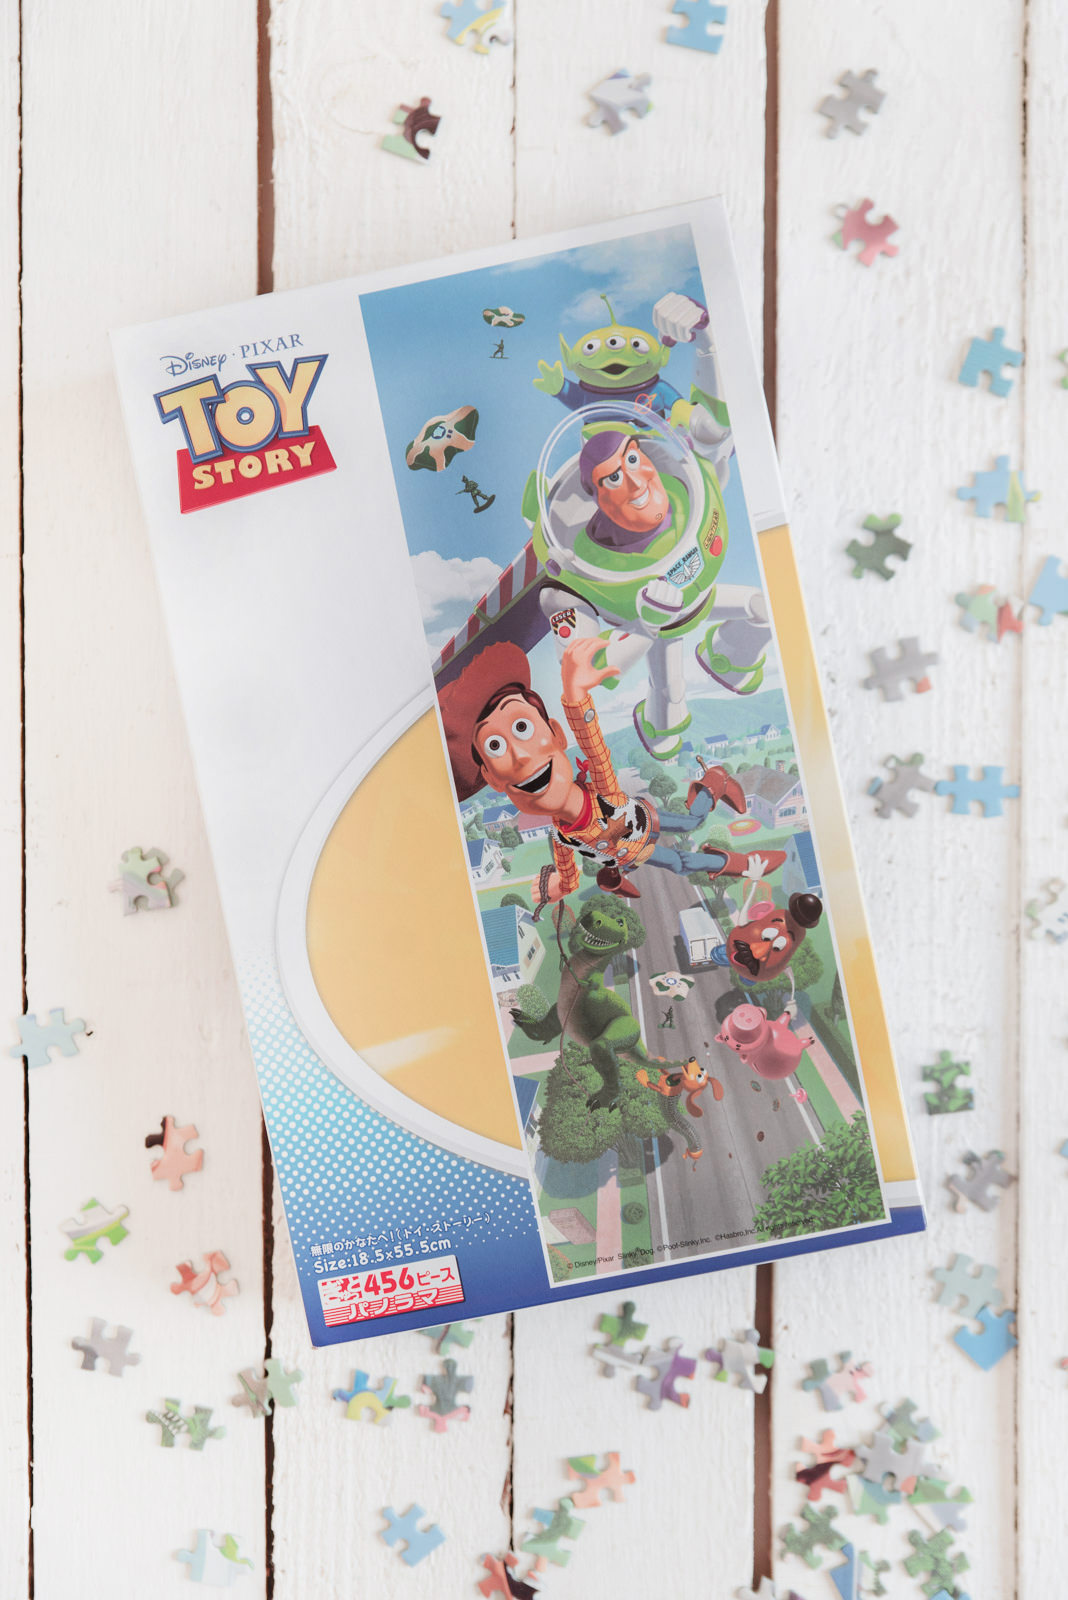 Blog-Mode-And-the-City-Lifestyle-Cinq-Petites-Choses-220-puzzle-toy-story copie